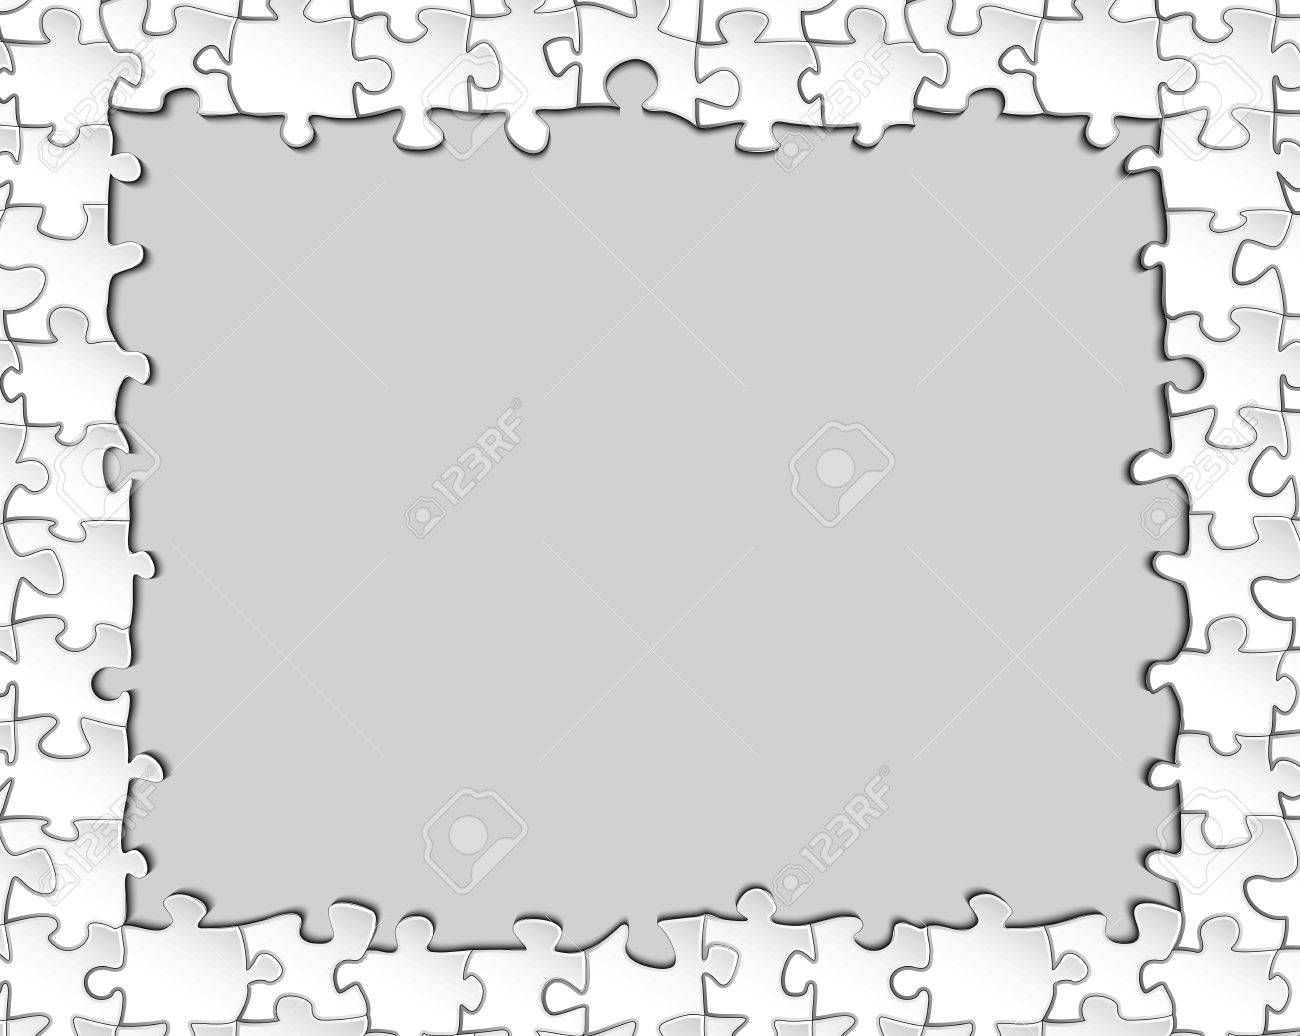 Black-and-white Frame Of The Elements Of The Puzzle With A Blank ...